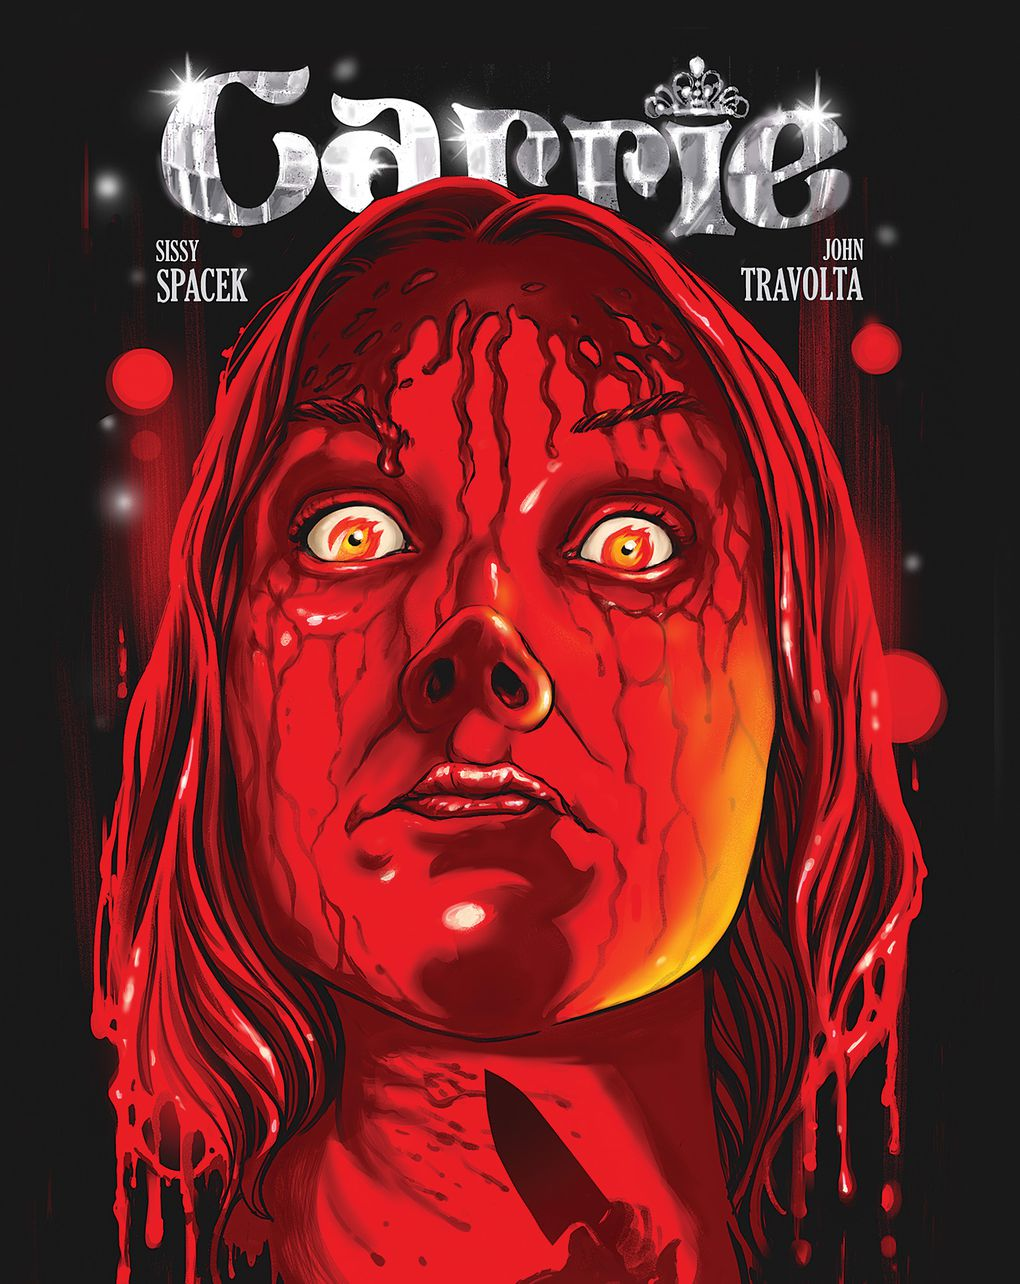 check out this gorgeous limited edition art for 13 classic horror carrie 1976 by ghoulish gary pulin